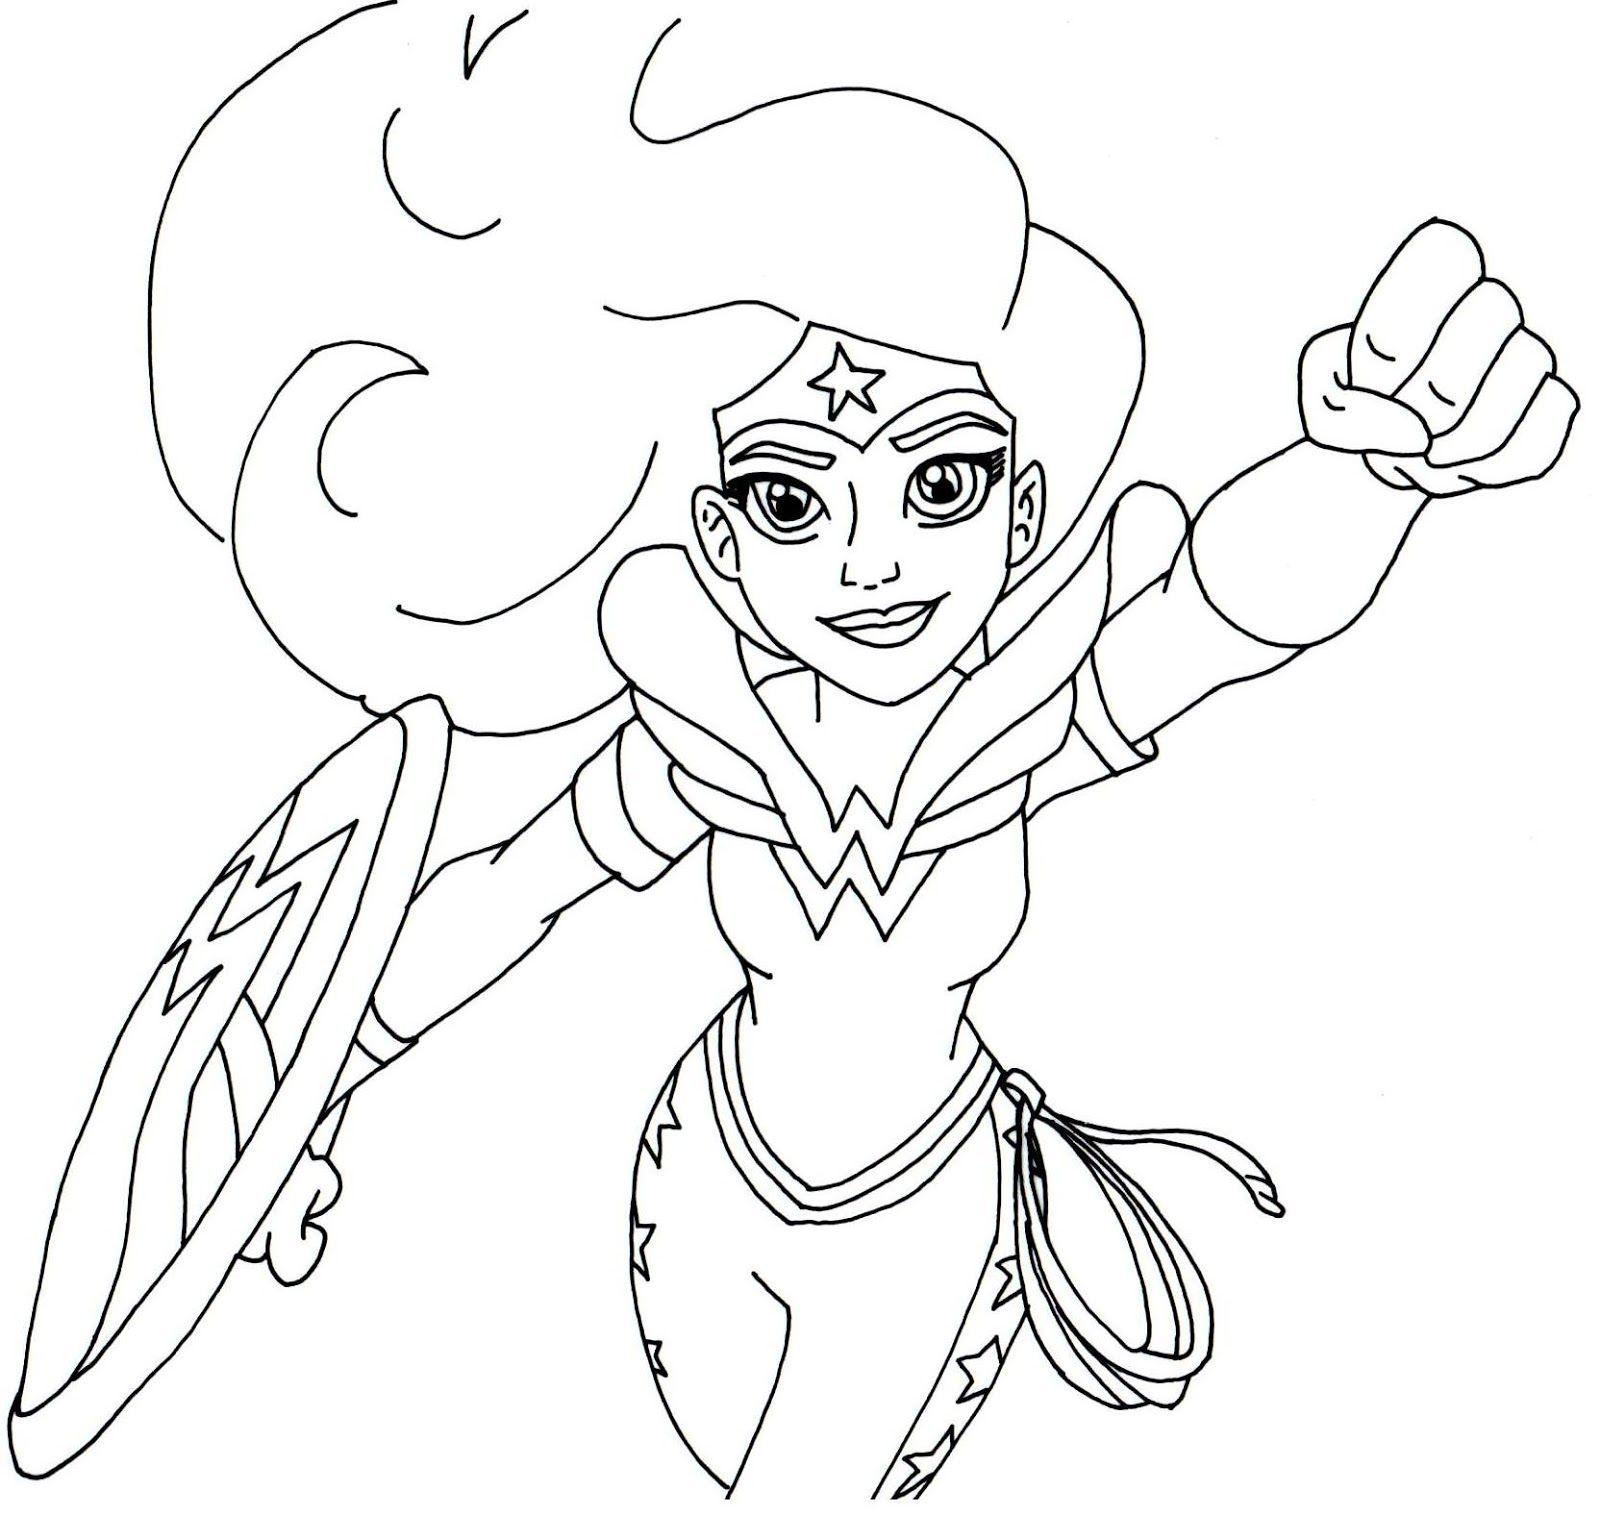 Dc Superhero Girls Coloring Pages Best Coloring Pages For Kids Superhero Coloring Mermaid Coloring Pages Superhero Coloring Pages